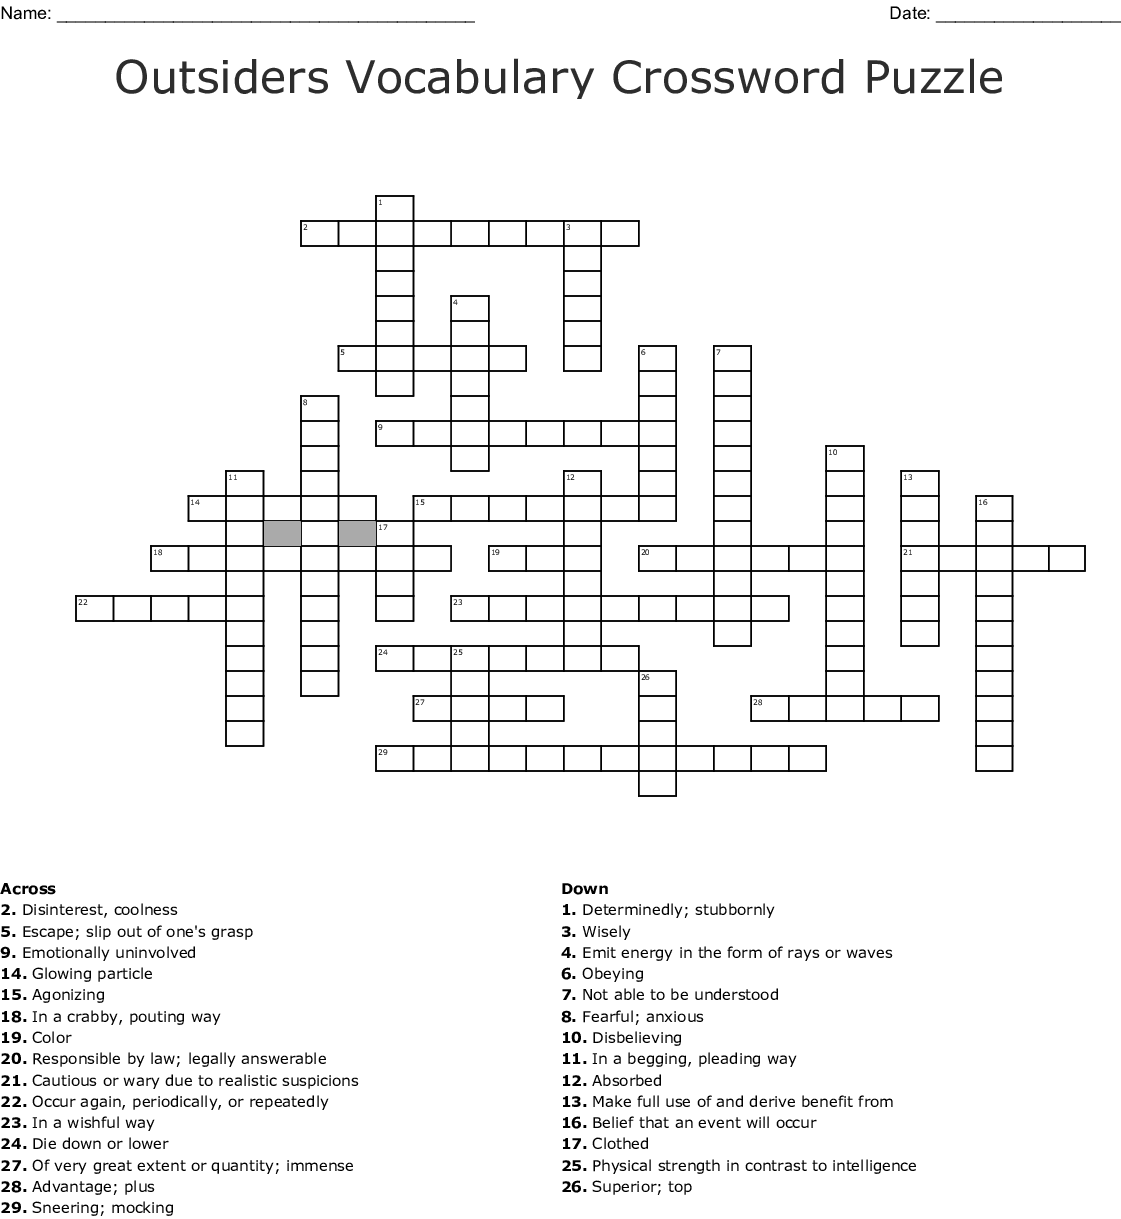 Outsiders Vocabulary Crossword Puzzle